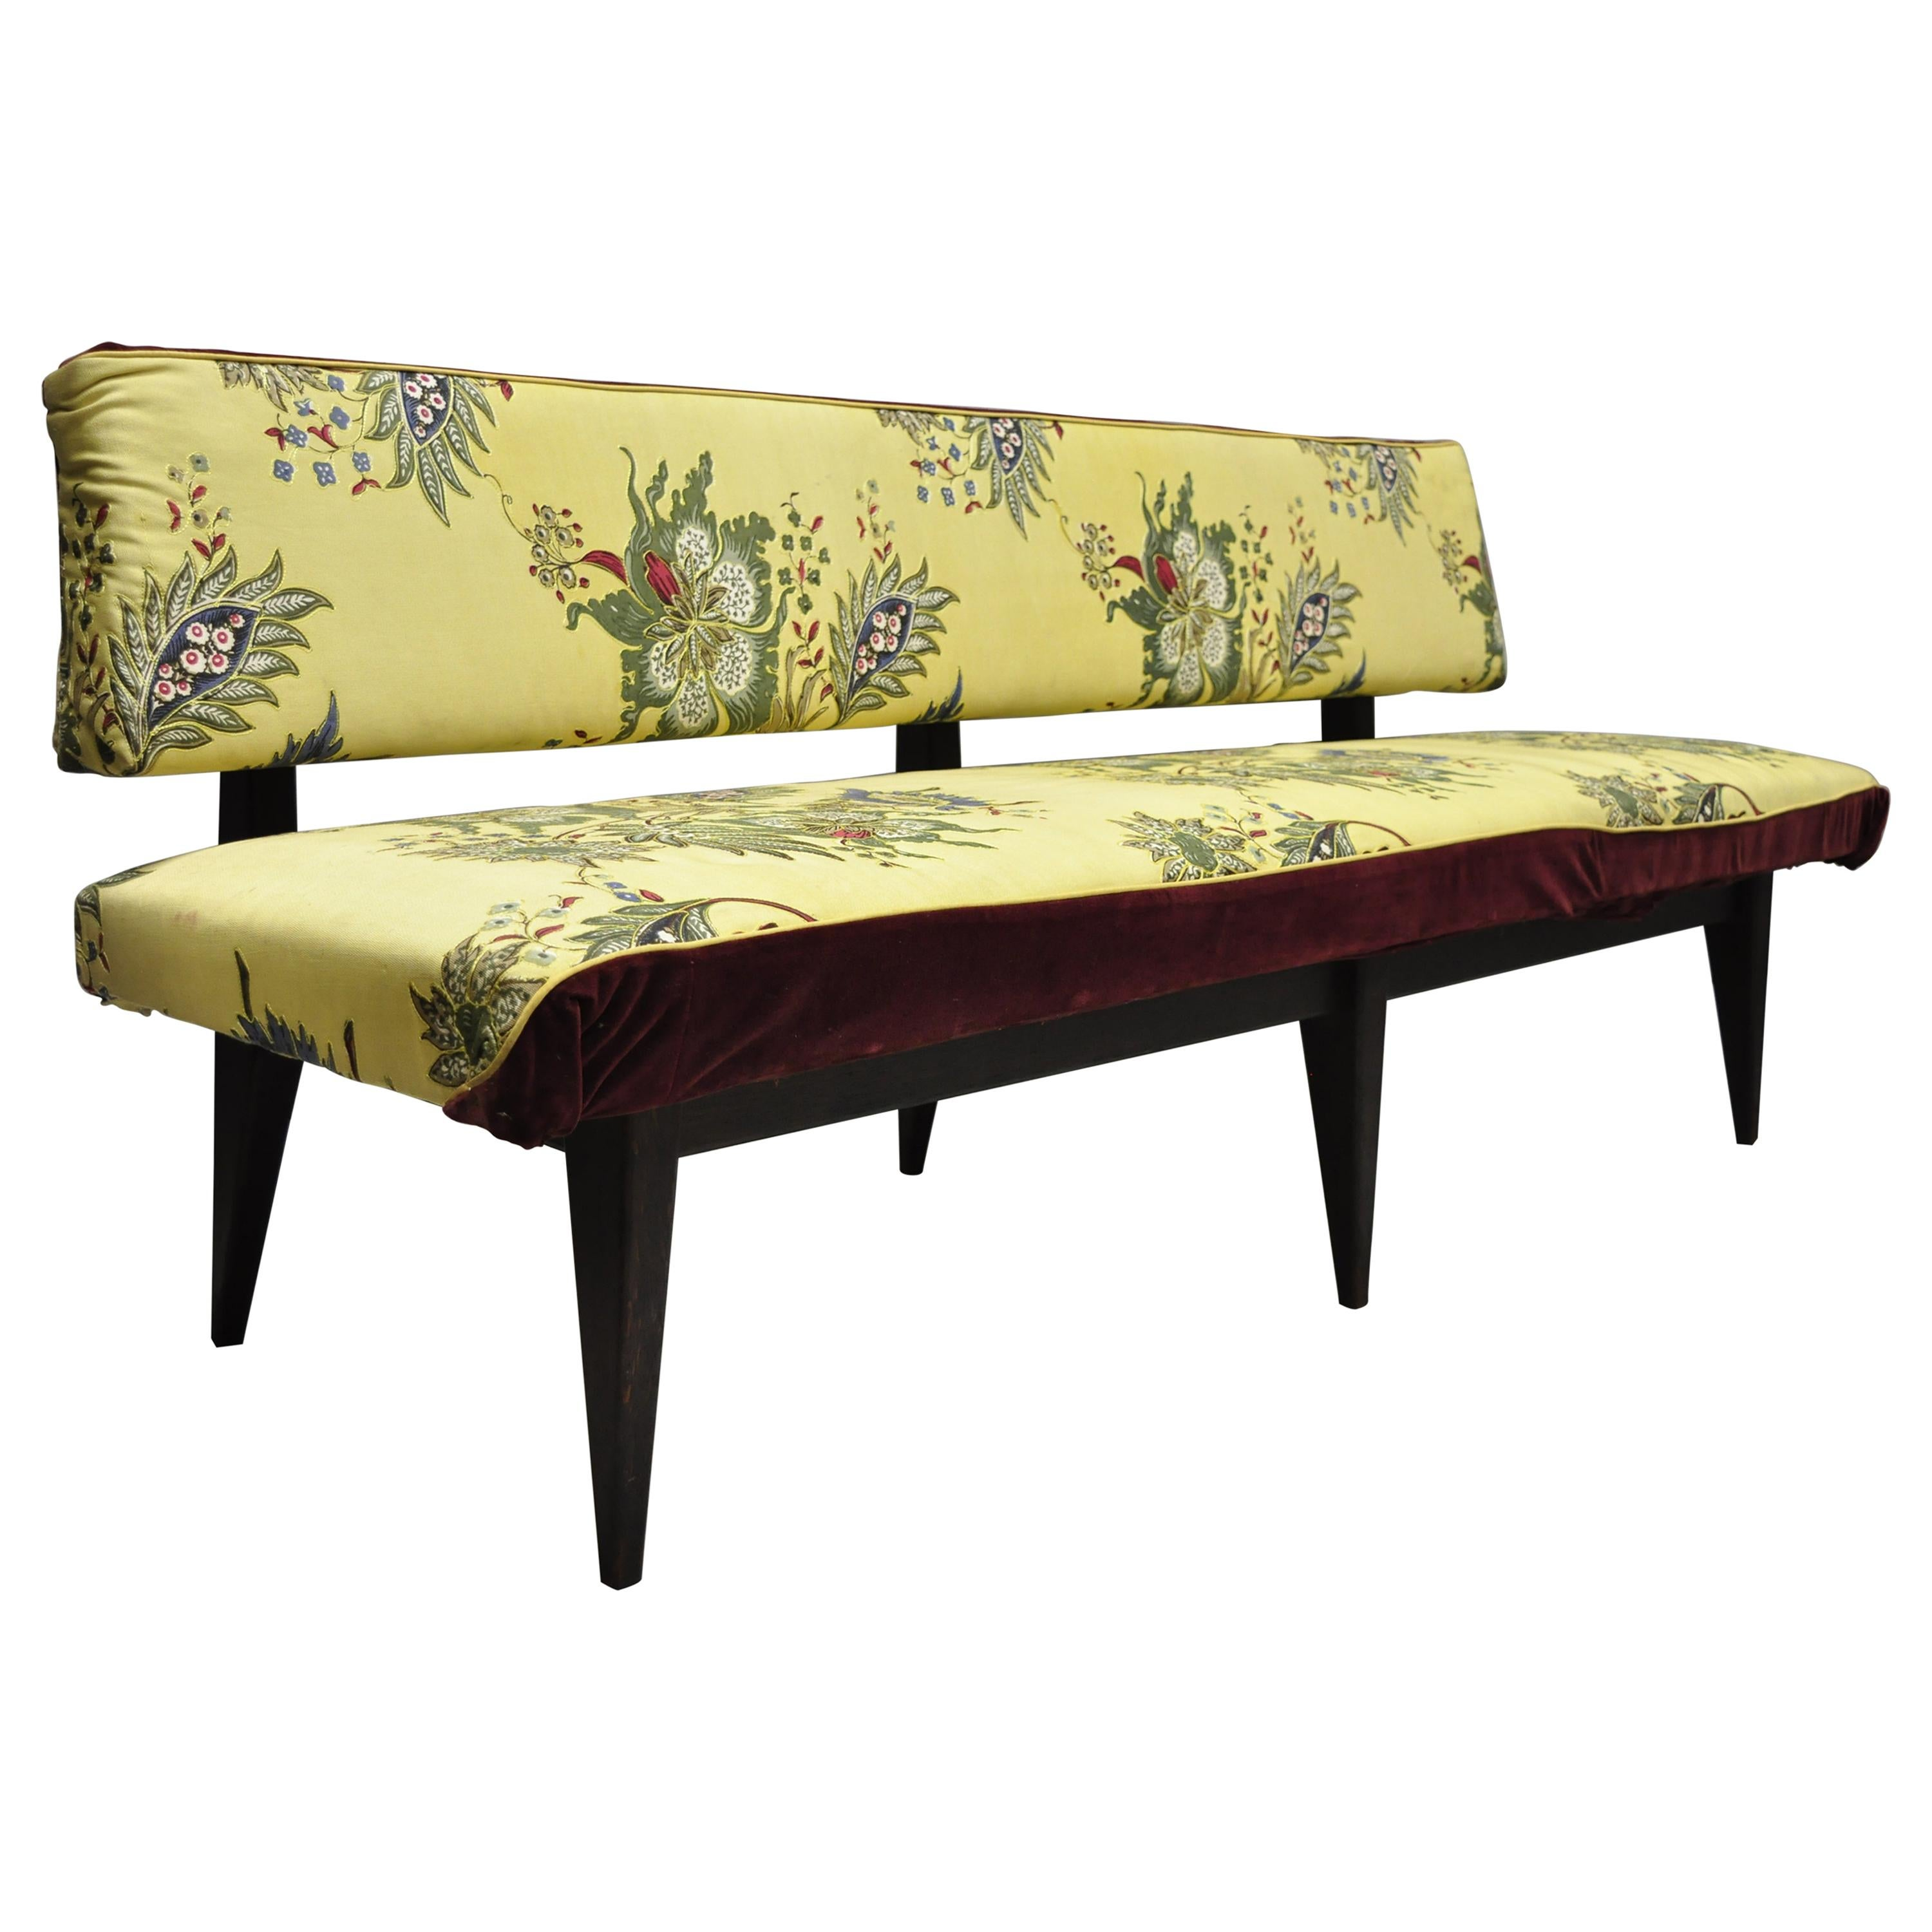 Vtg Mid Century Italian Modern Oak Wood Banquette Settee Bench After Paolo Buffa For Sale At 1stdibs